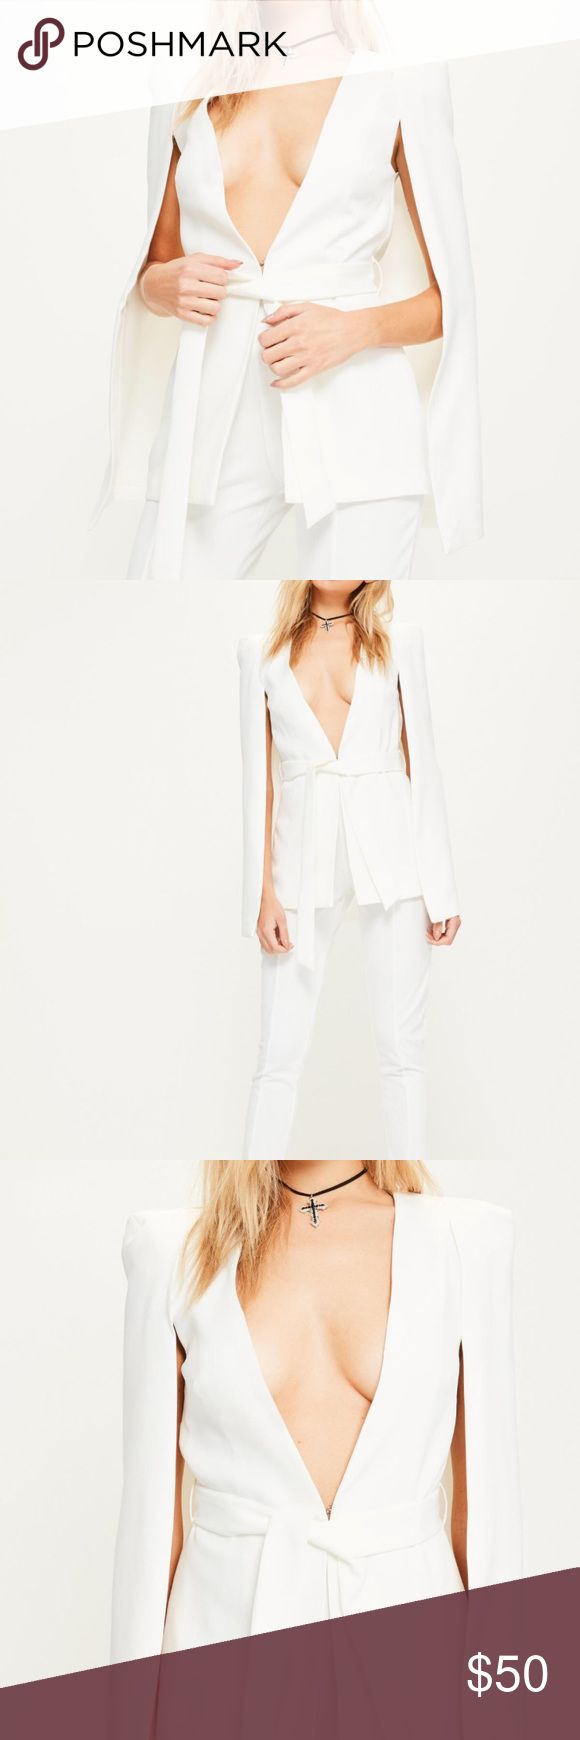 Missguided White Crepe Tie Waist Cape Blazer Brand new with tags and sealed in plastic packaging - never opened Missguided Tops